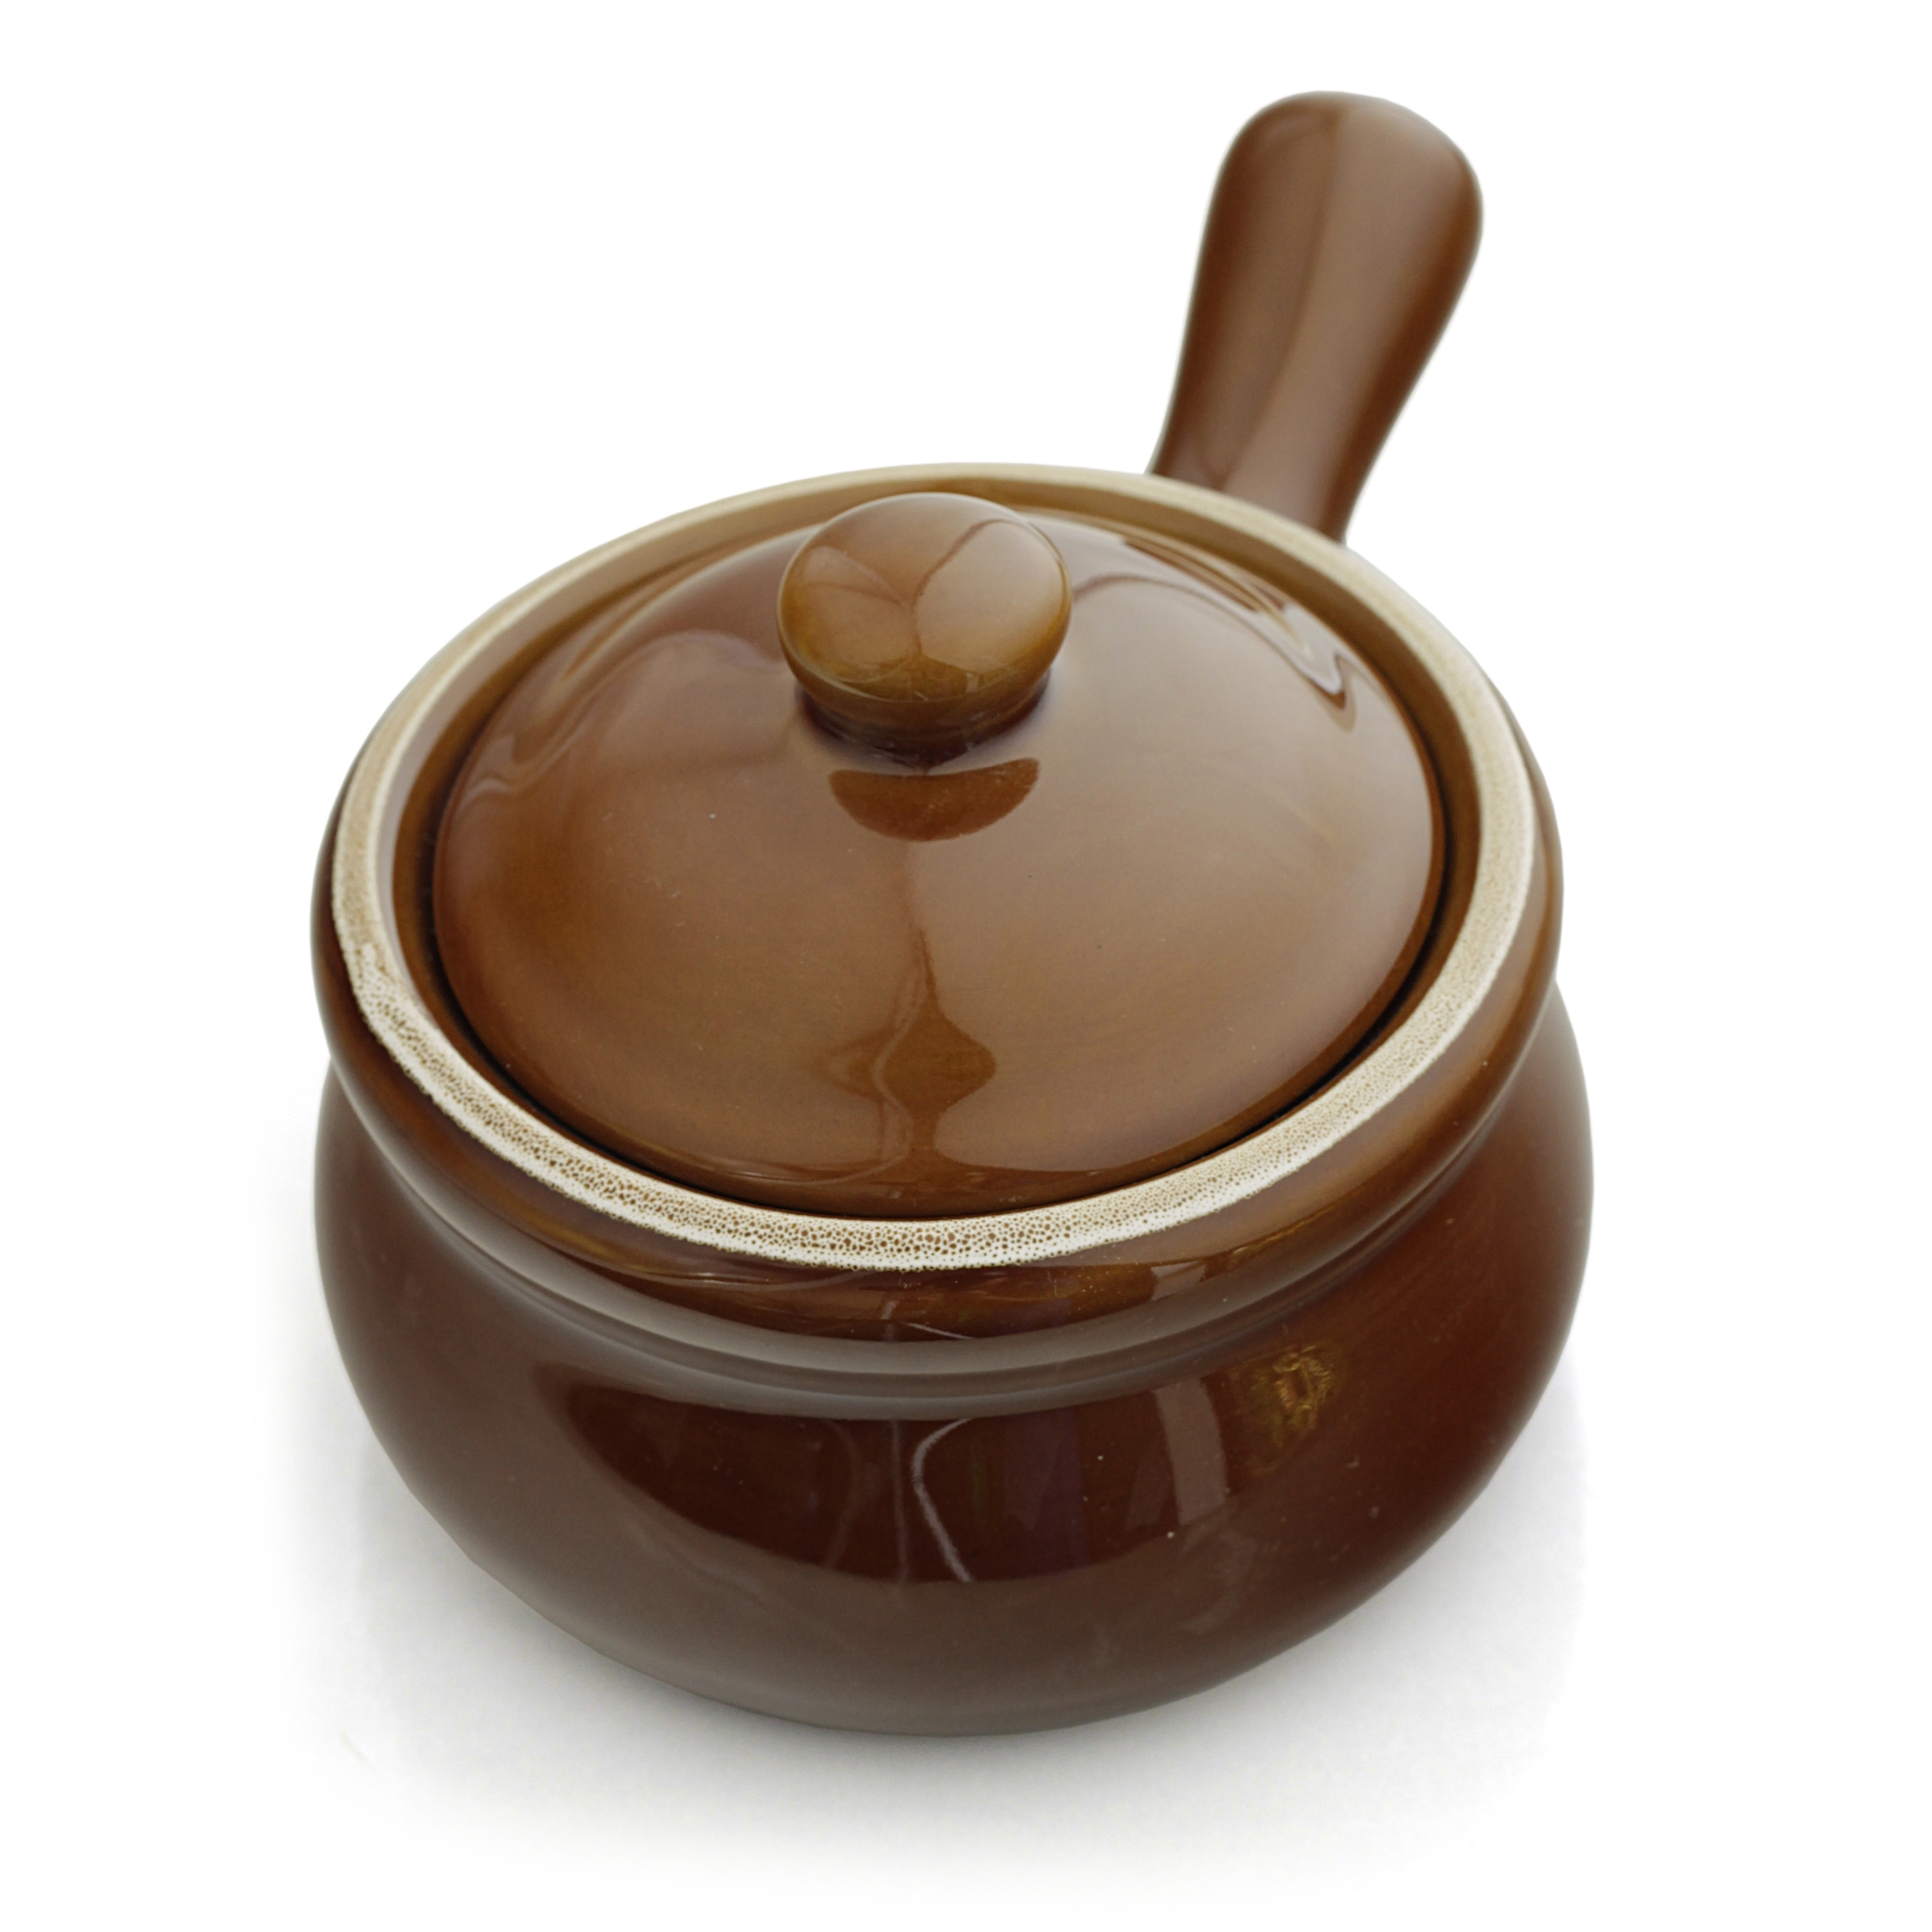 HIC Harold Import Co Ceramic 14 Ounce French Onion Soup Crock with Lid, Set of 4